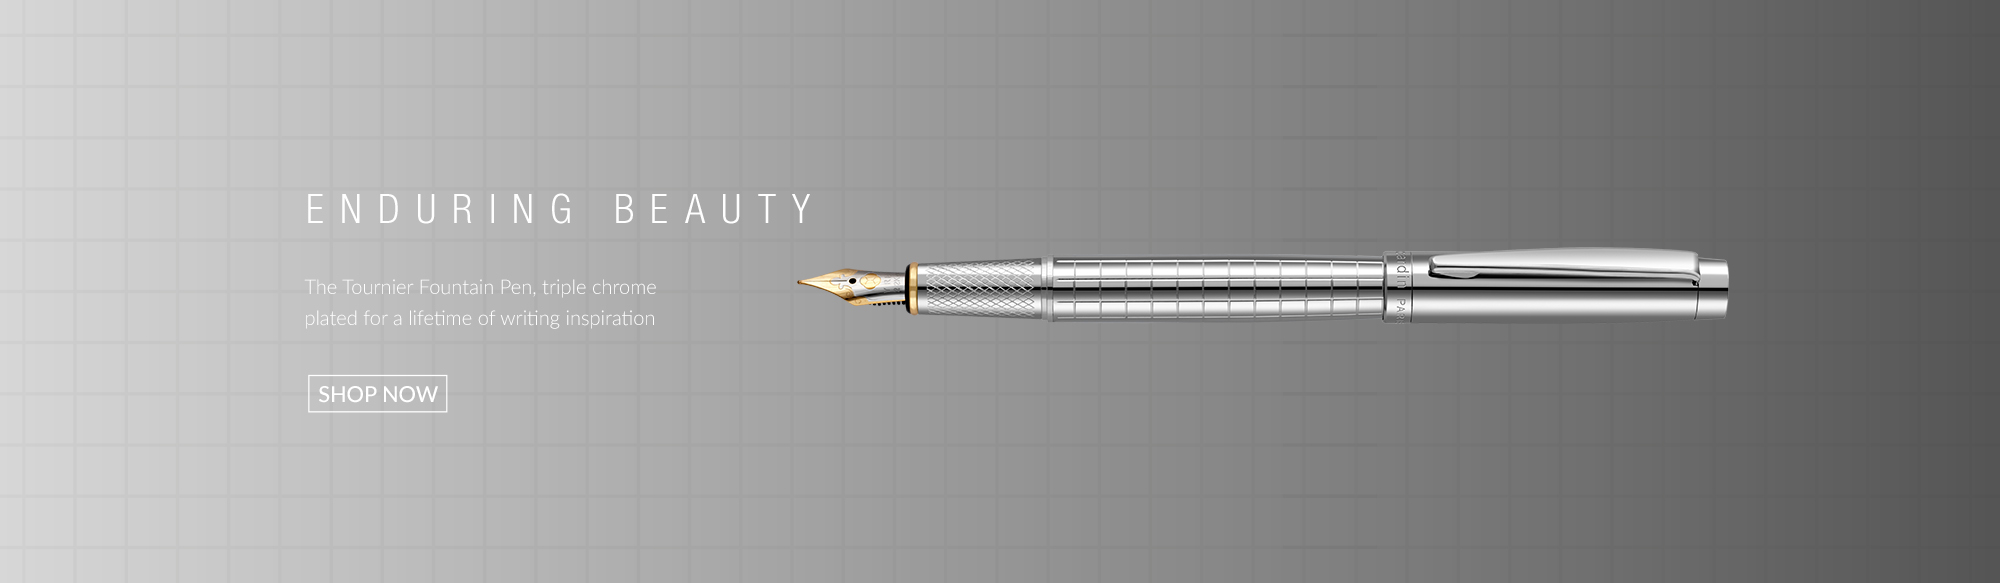 Designer fountain-pens from Pierre Cardin